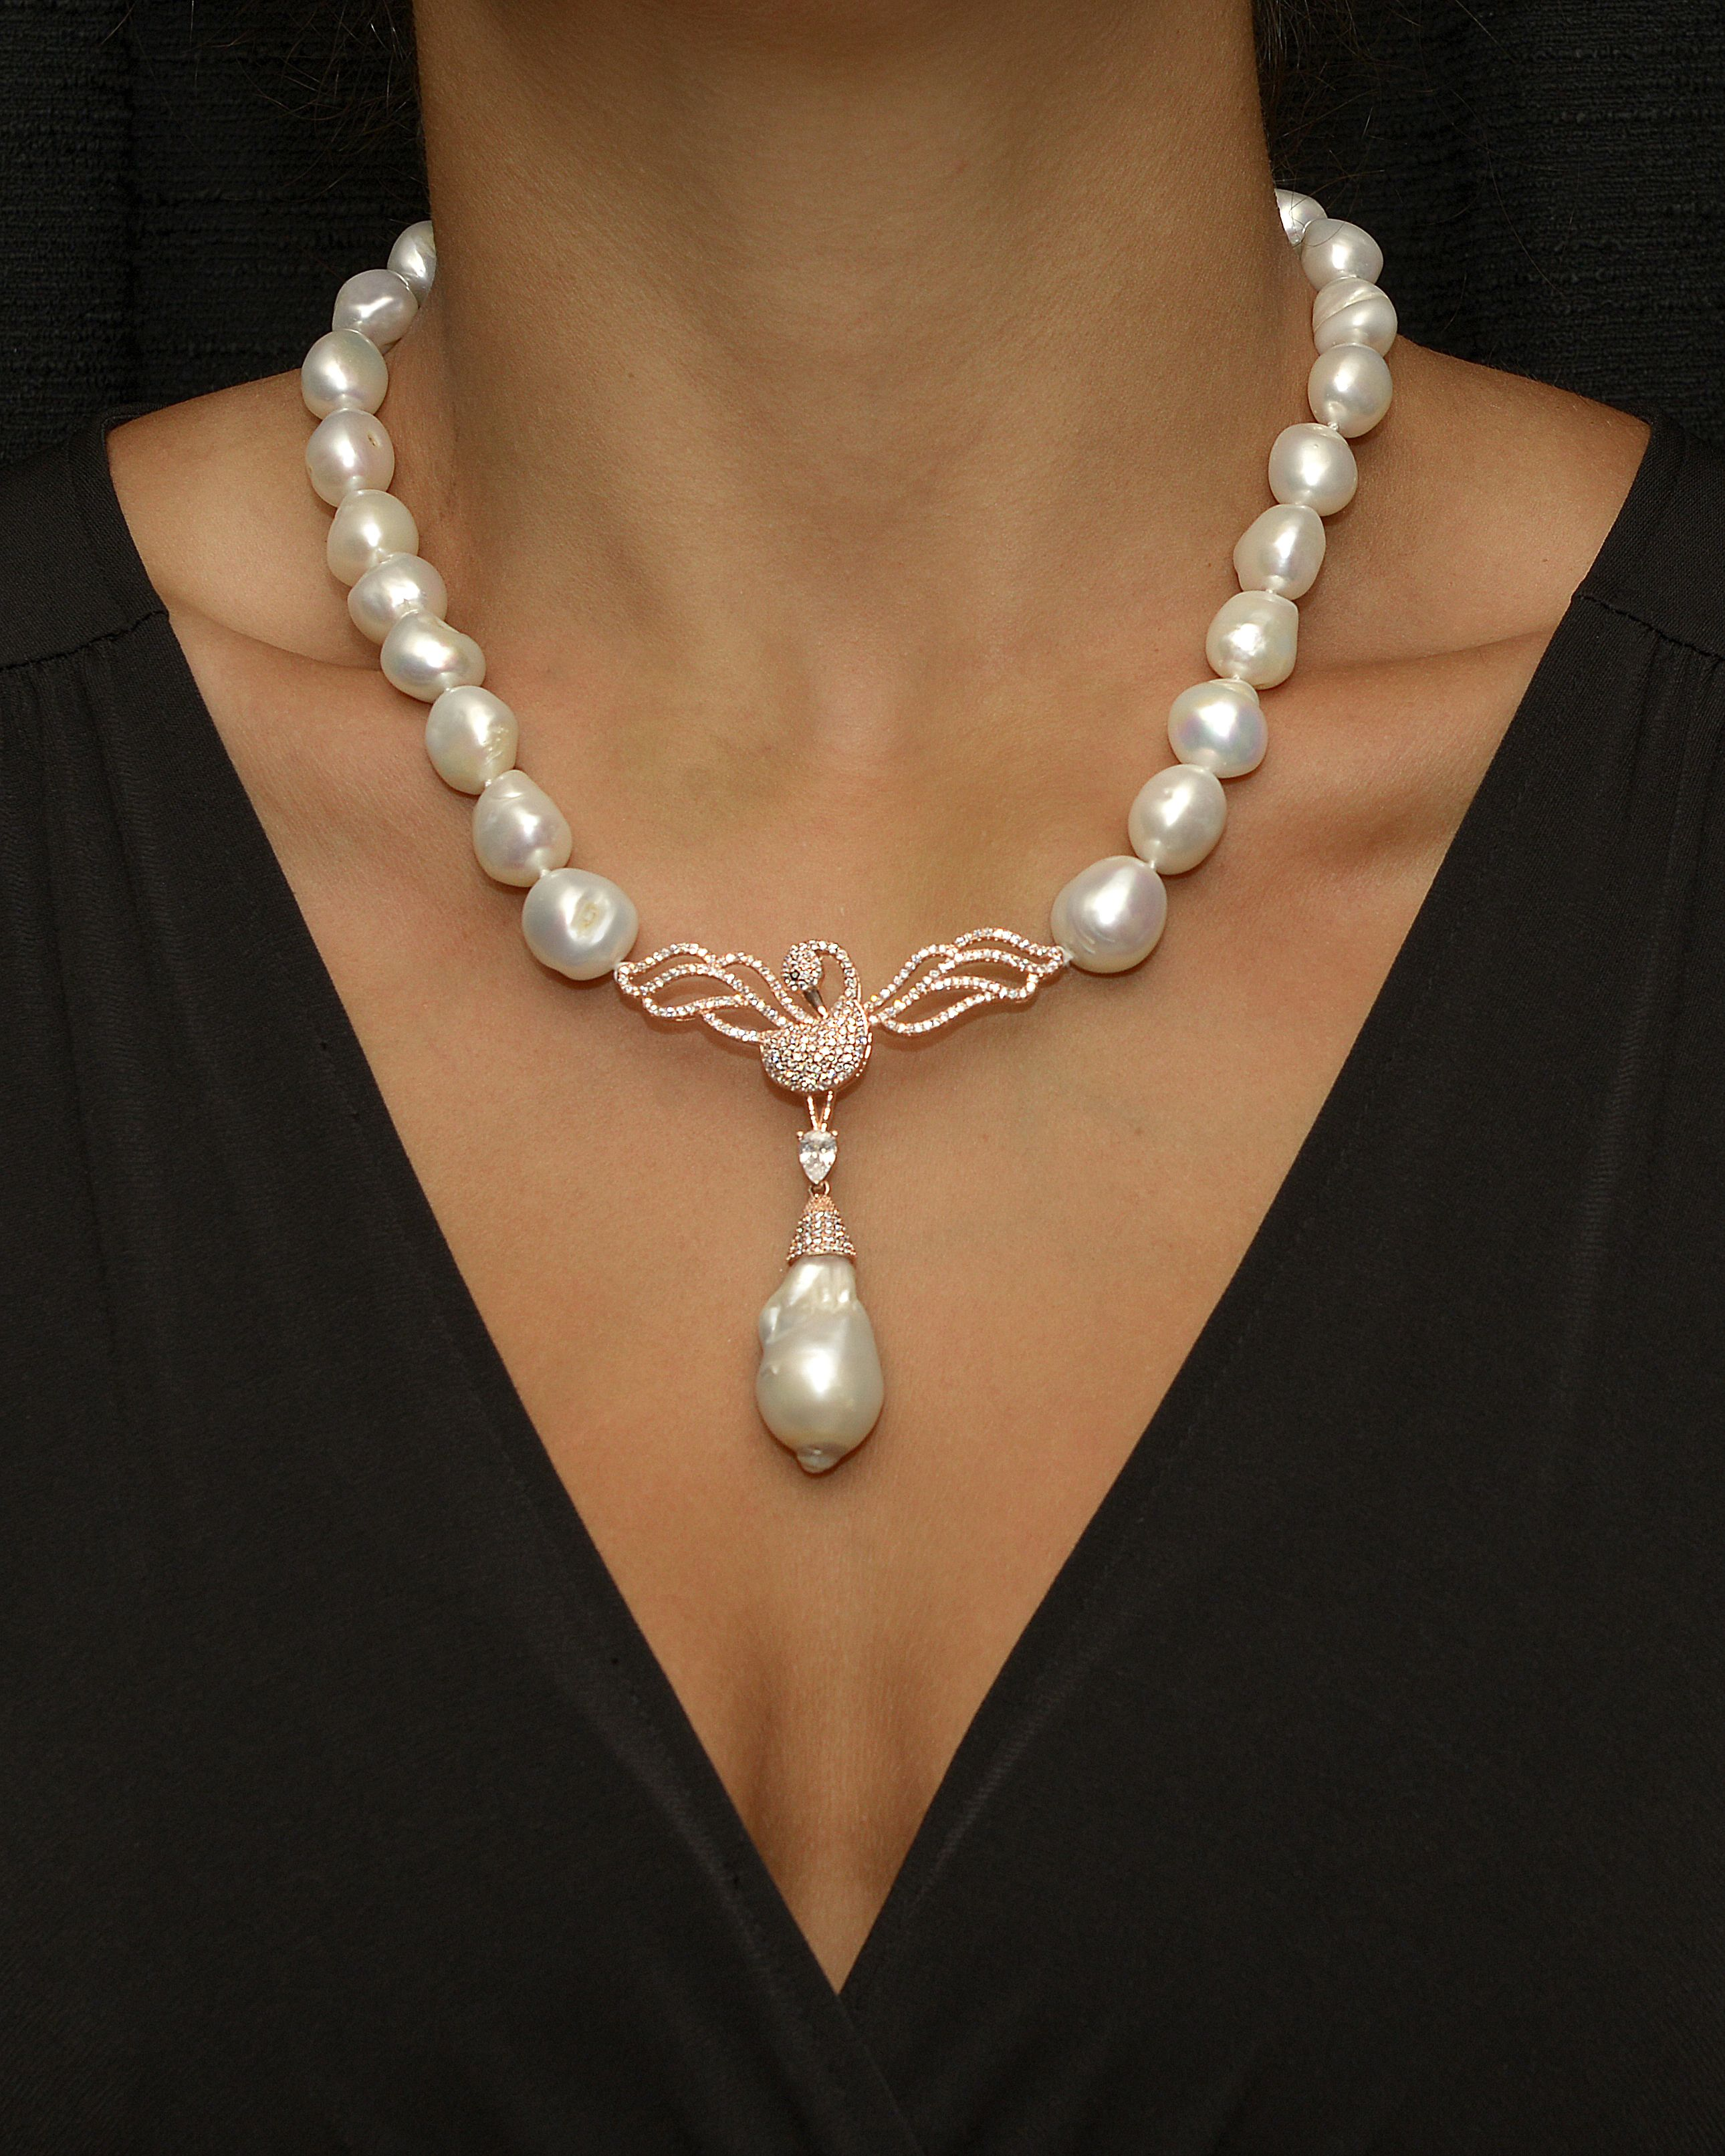 4d32c9c9e8ca The Odette Anthology  - Pearl Necklace is part of the  NaughtonBraun LBD  blog and video. These potato  pearls are sensual to feel!